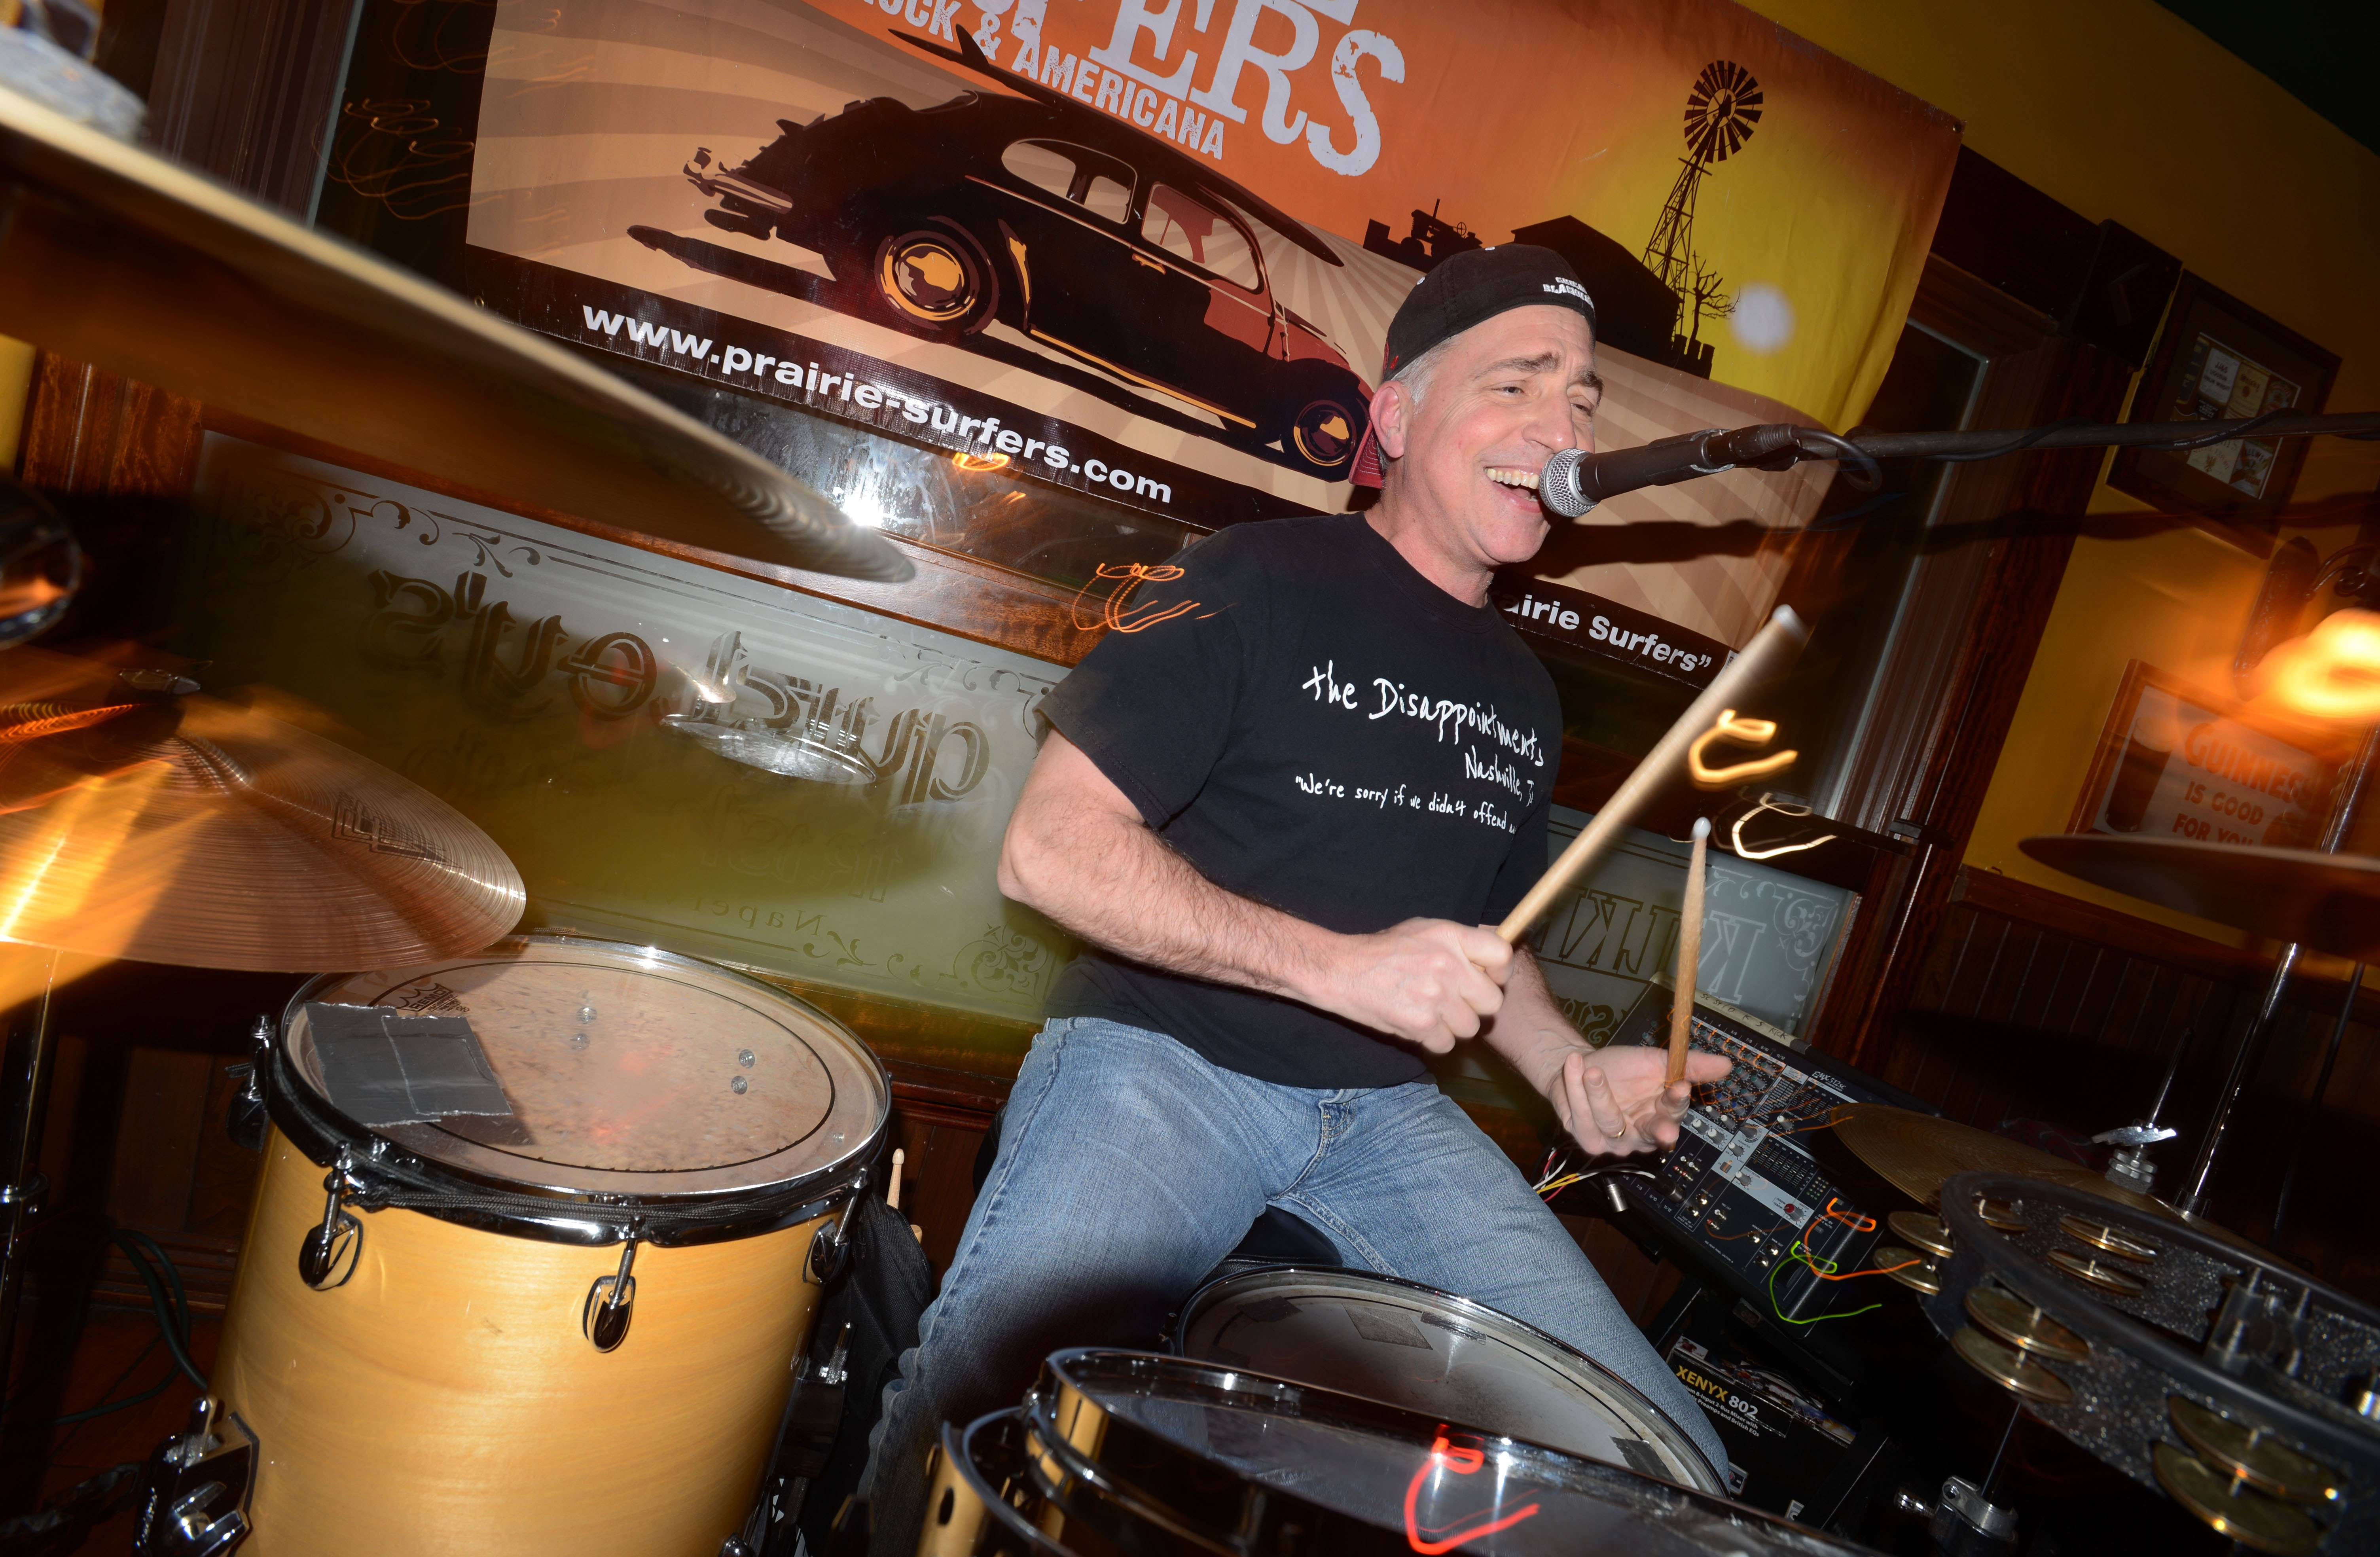 Steve Mores, 57, of Aurora is back to playing drums in his popular cover band, Prairie Surfers, at Quigley's Irish Pub in Naperville.